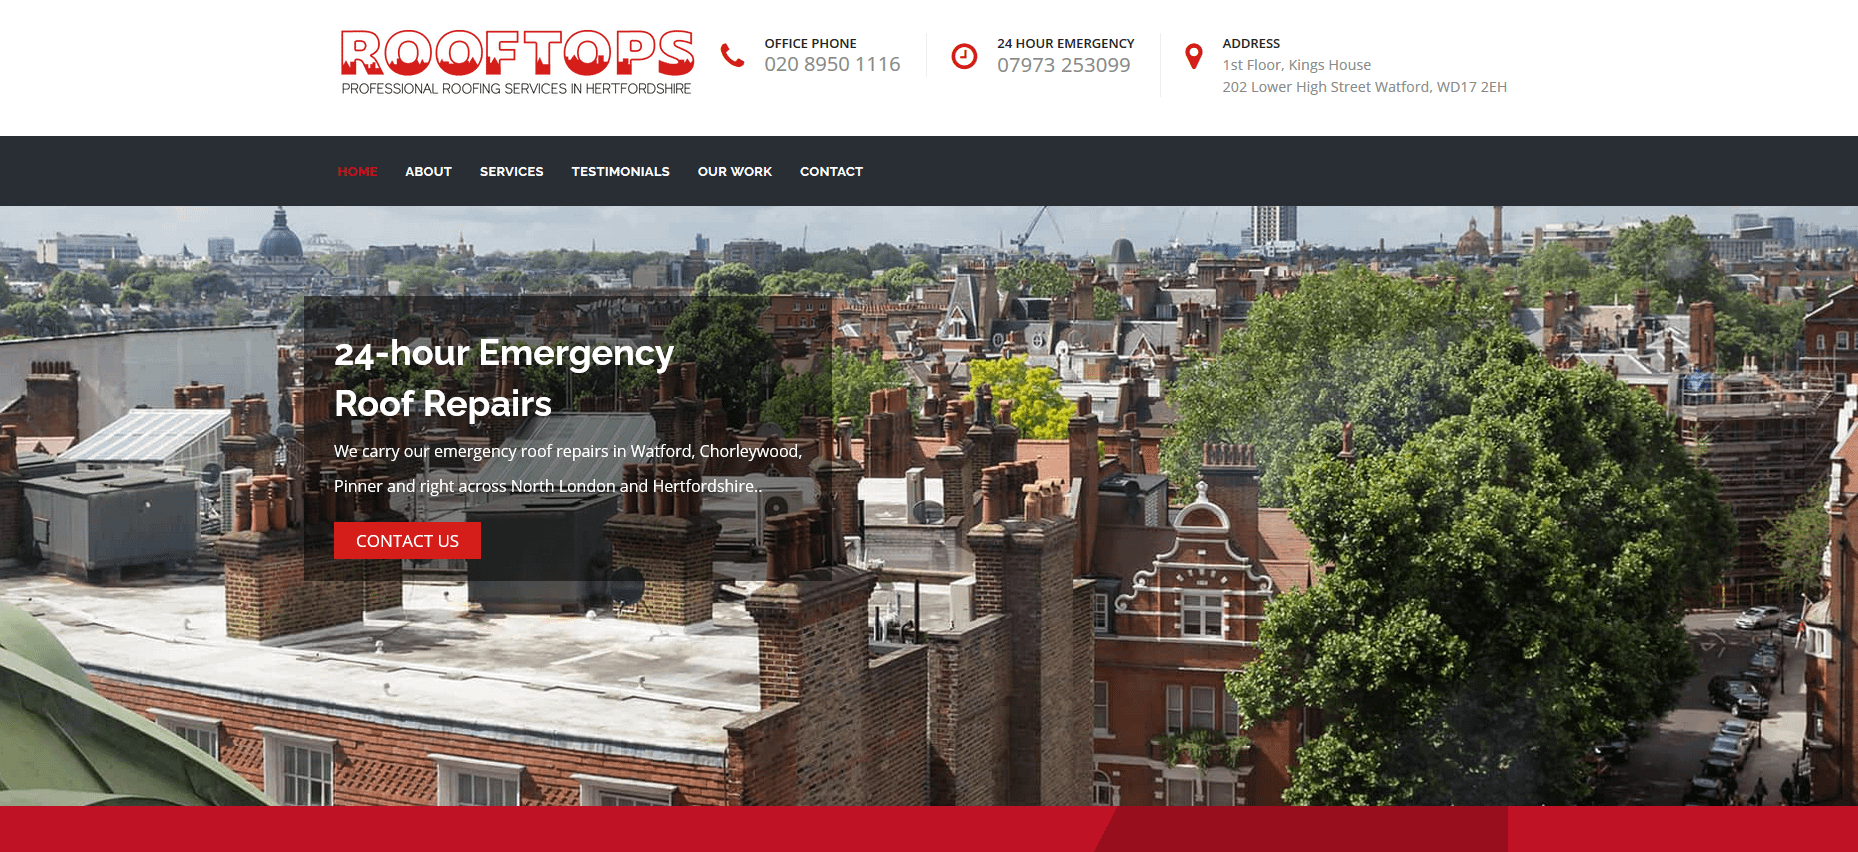 Wordpress web design for a roofing company in Watford